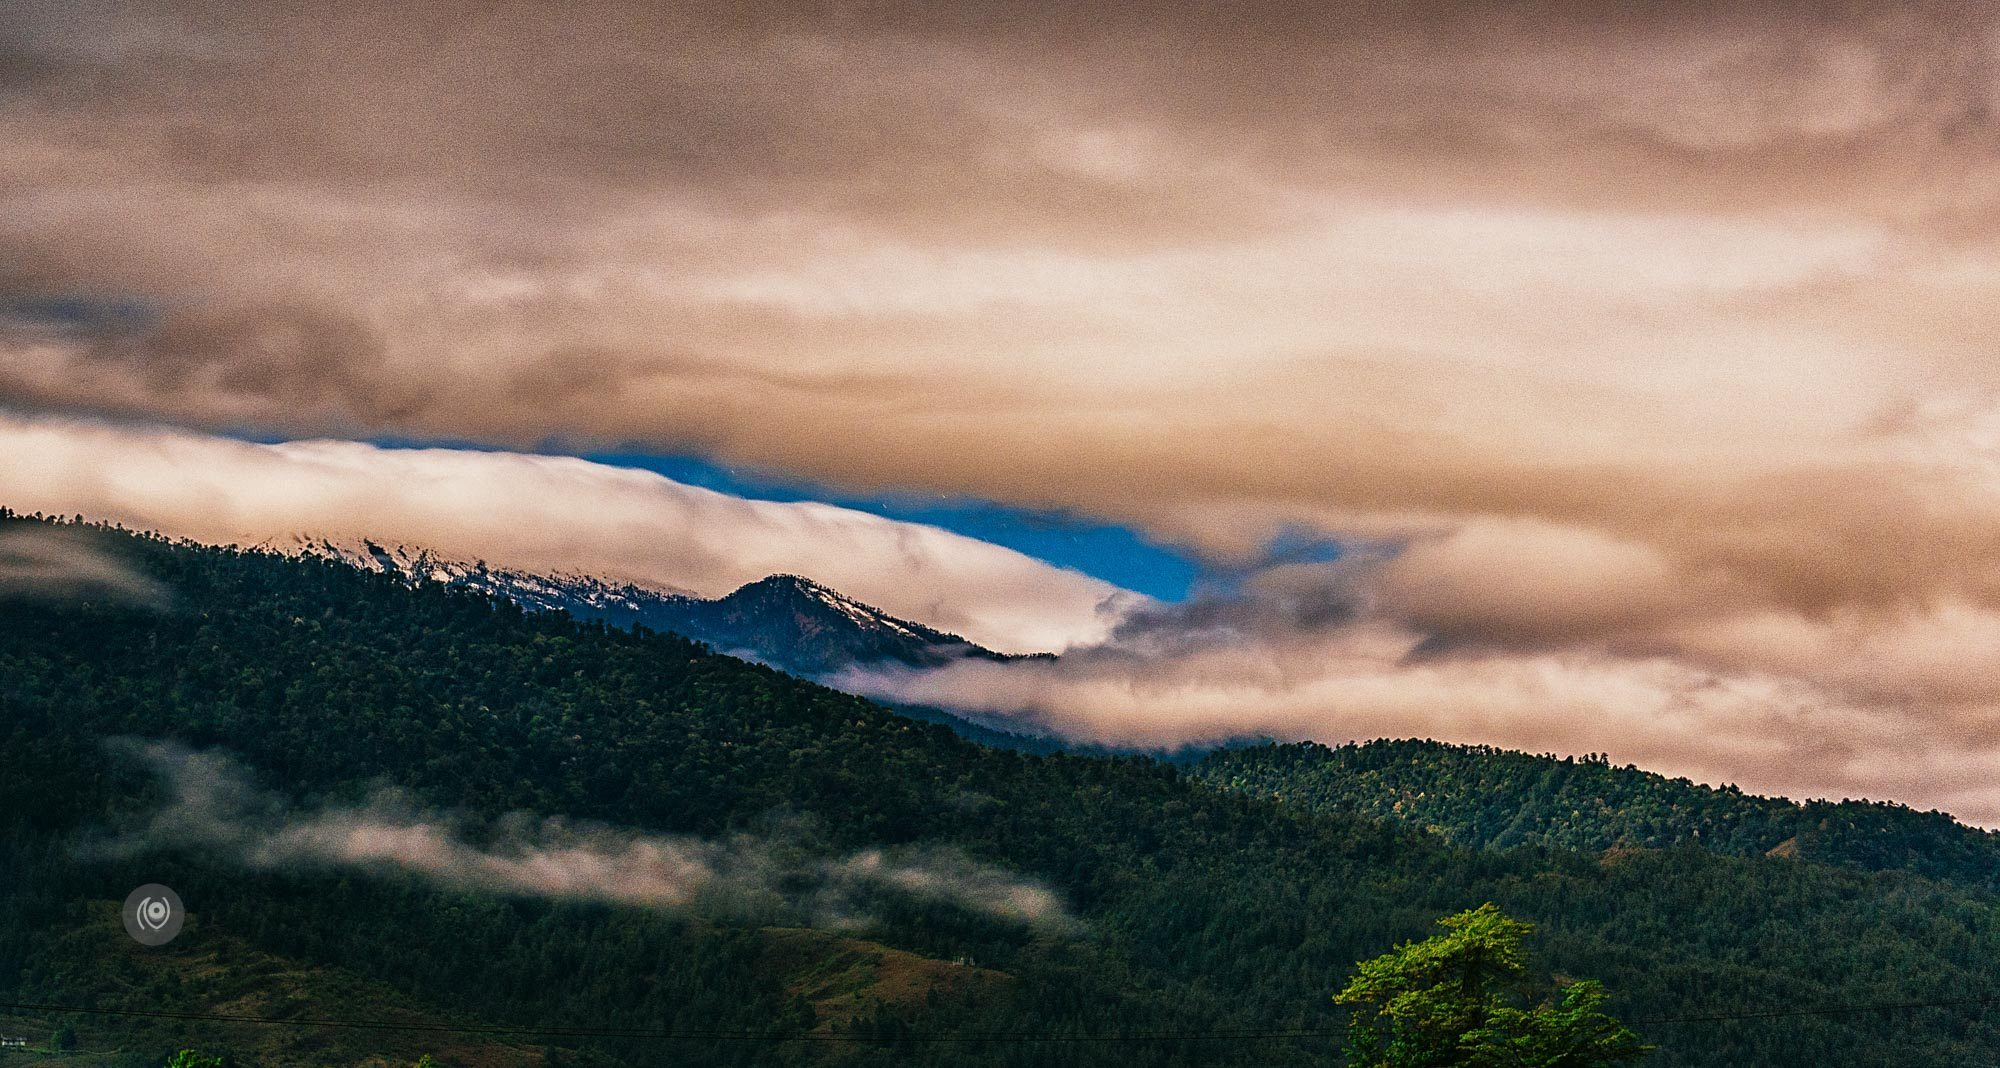 Landscape, #EyesForArunachal, Naina.co, Luxury Photographer, Lifestyle Photographer, Travel Photographer, Fashion Photographer, Naina Redhu, #EyesForDestinations, #EyesForIndia, Destination Photographer, India, Arunachal Pradesh, Experience Collector, Photo Story, Visual Experience Collector, Aalong, Aalo, Menchukha, Dorjeeling, Yorlung